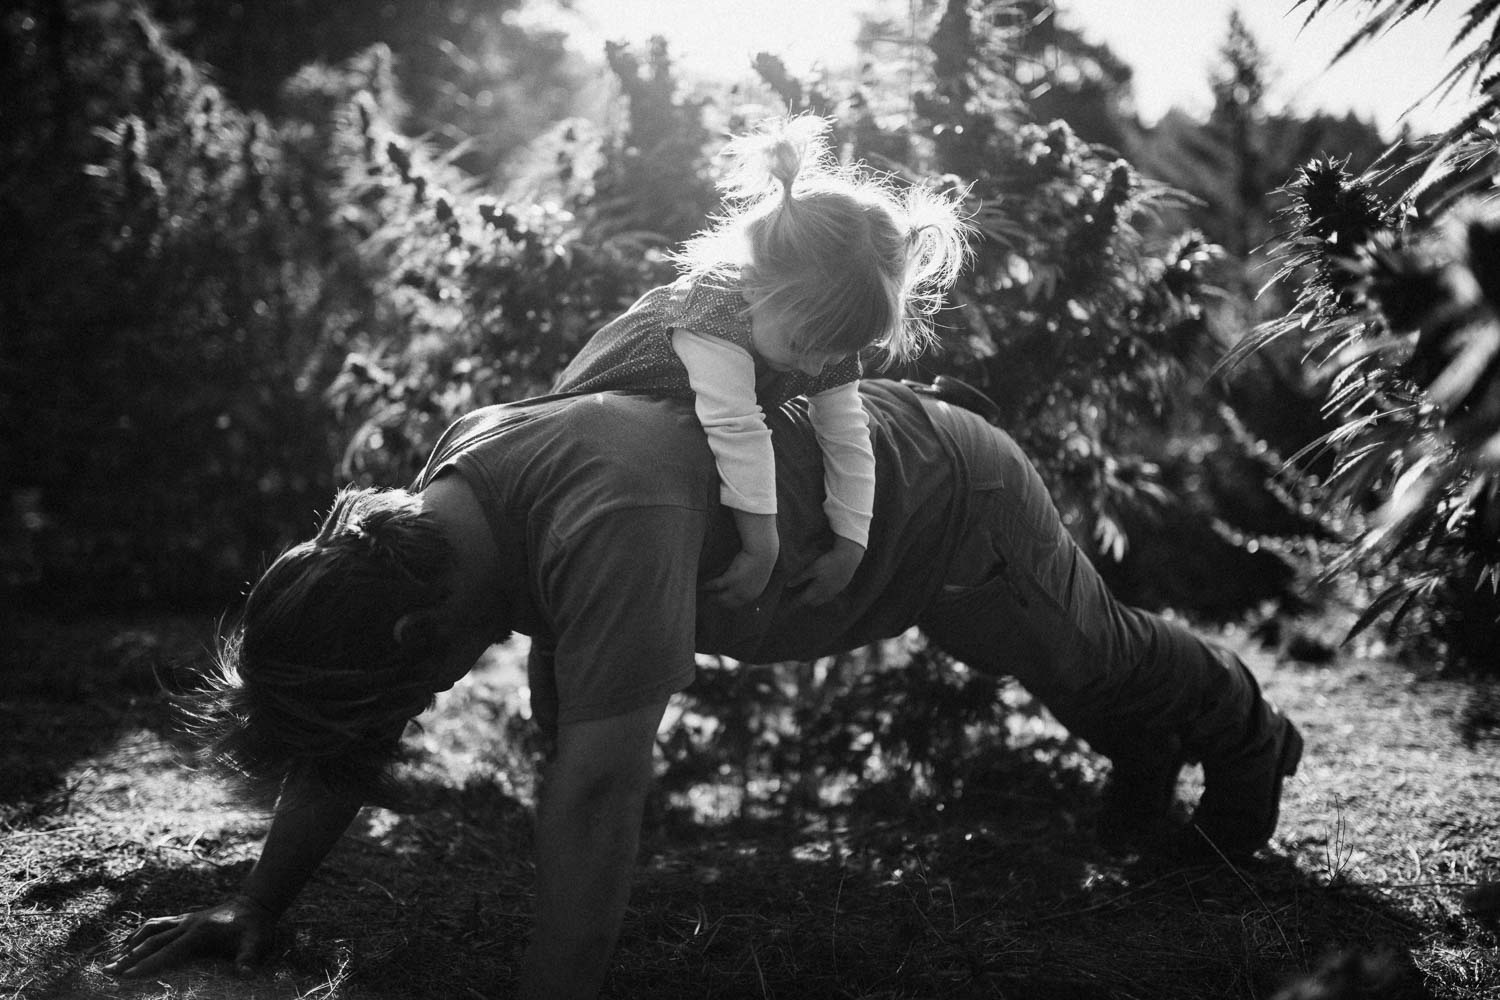 natural-and-artistic-black-and-white-photo-of-boy-doing-push-ups-with-little-girl-on-his-back-on-weed-farm-in-benbow-california